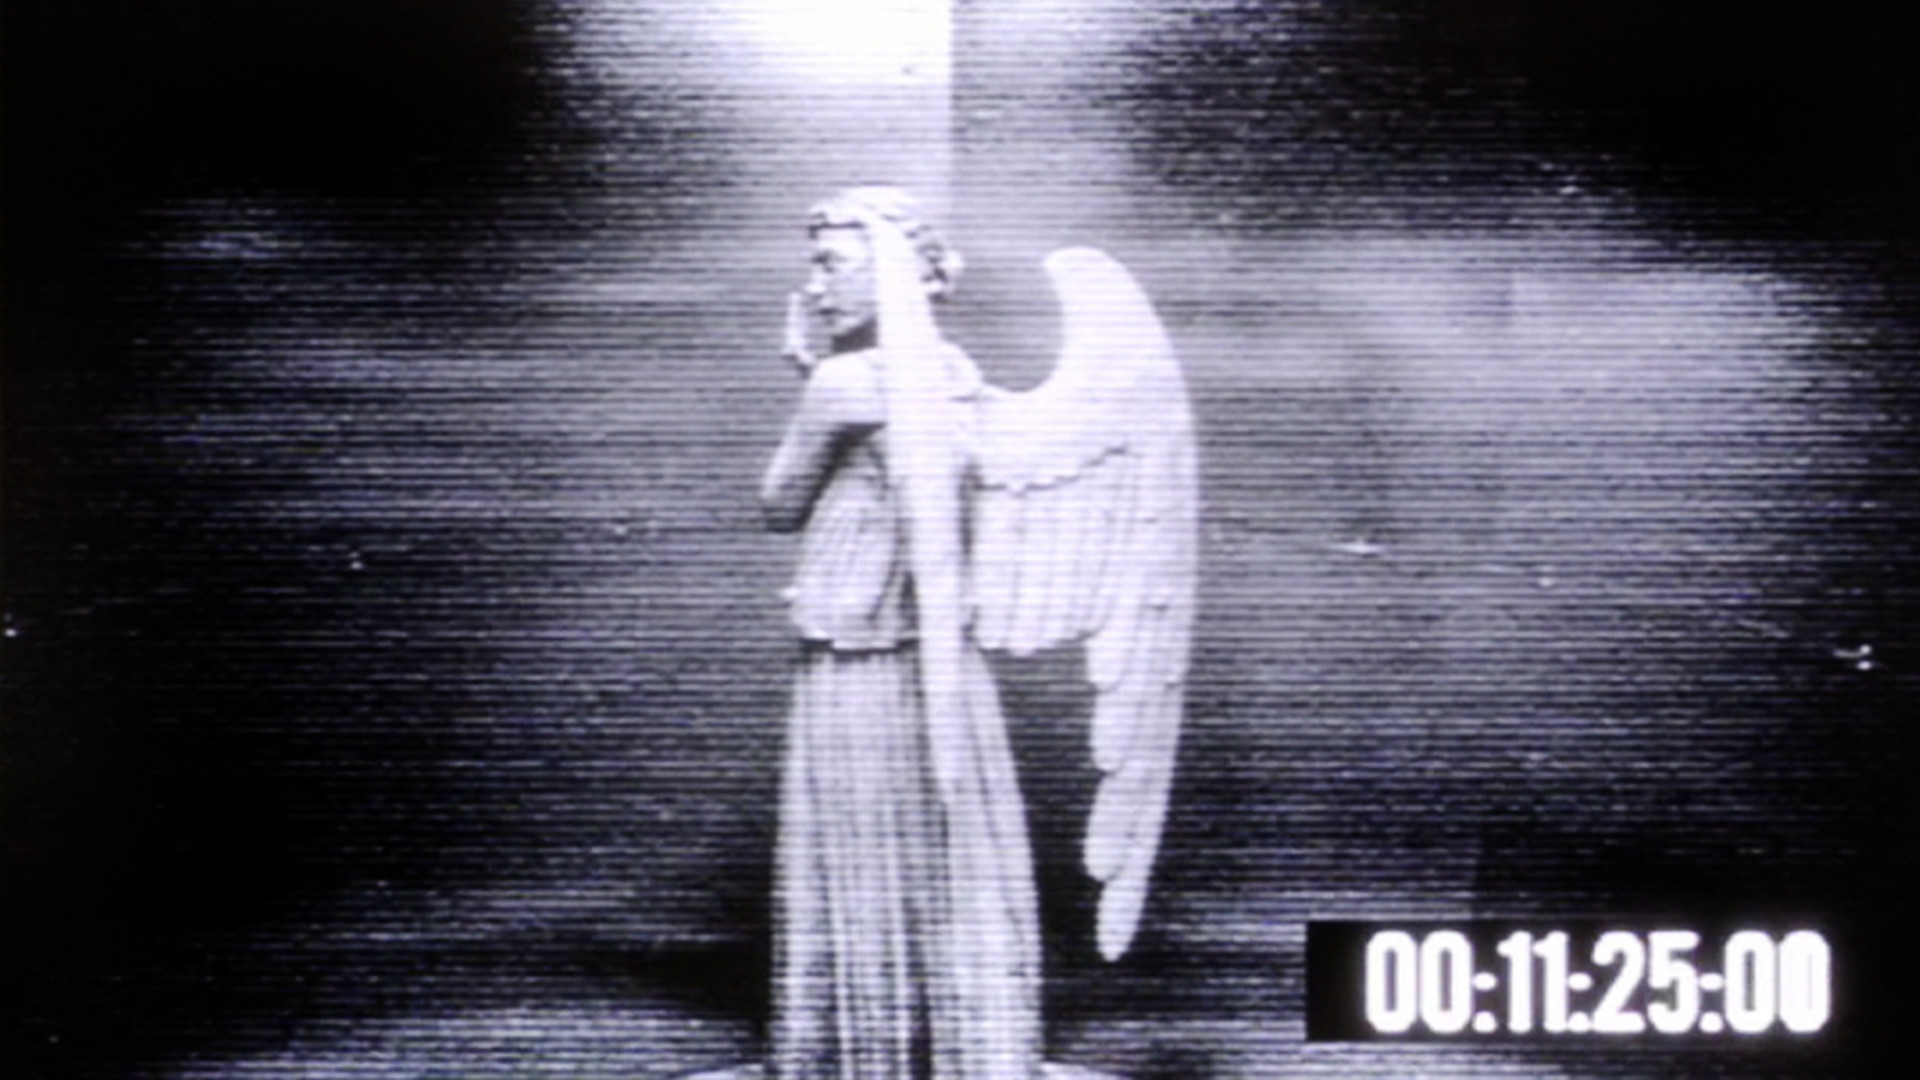 1920x1080 Weeping Angels wallpapers. Set it to change every few seconds for some fun.  - Album on Imgur